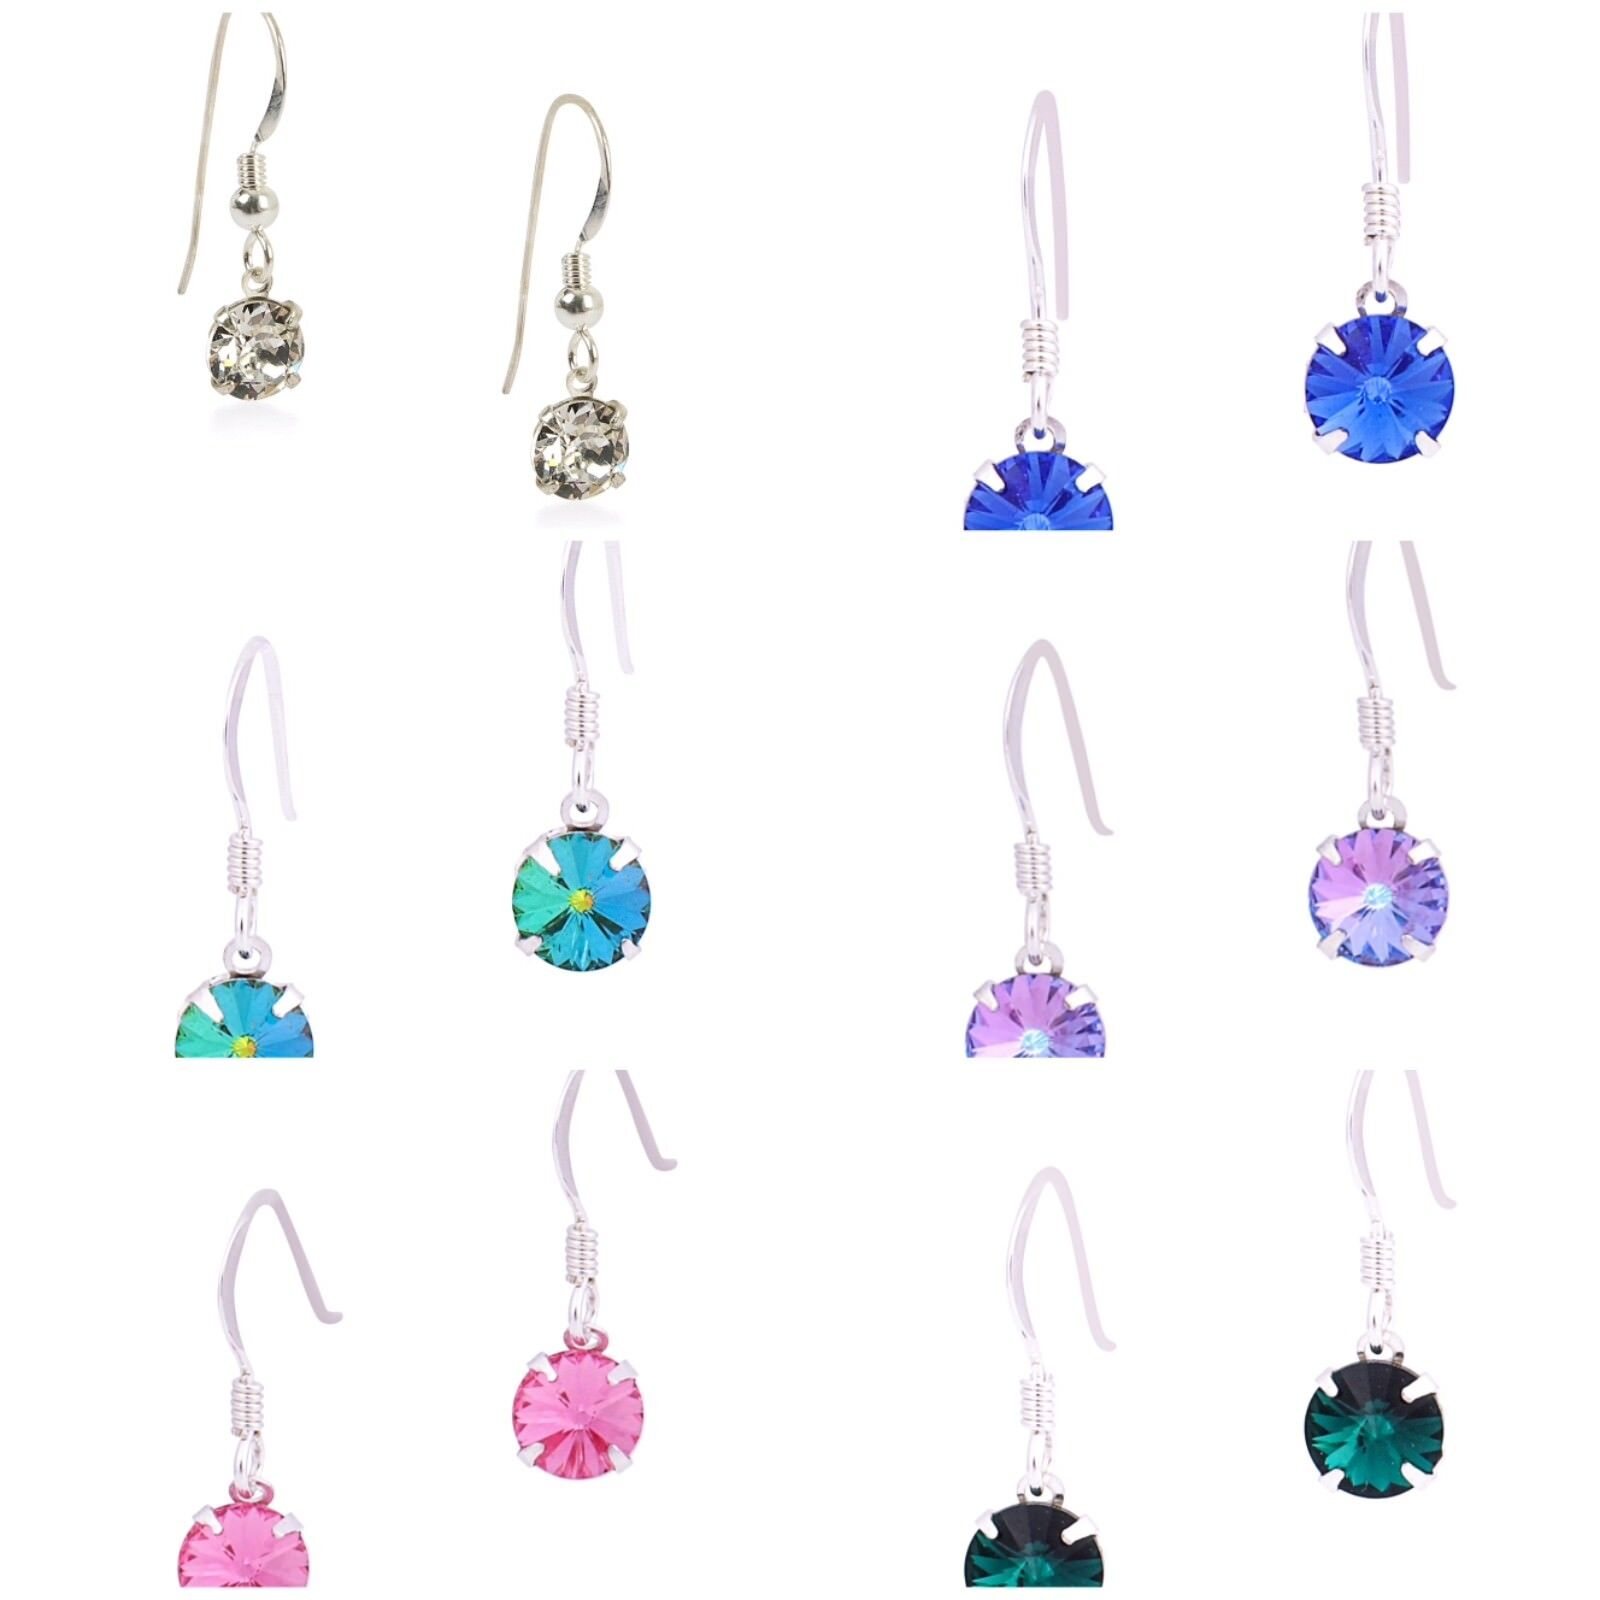 f035f75642b07 Details about 925 Sterling Silver Hook Earrings Made From Swarovski Crystal  In various Colours